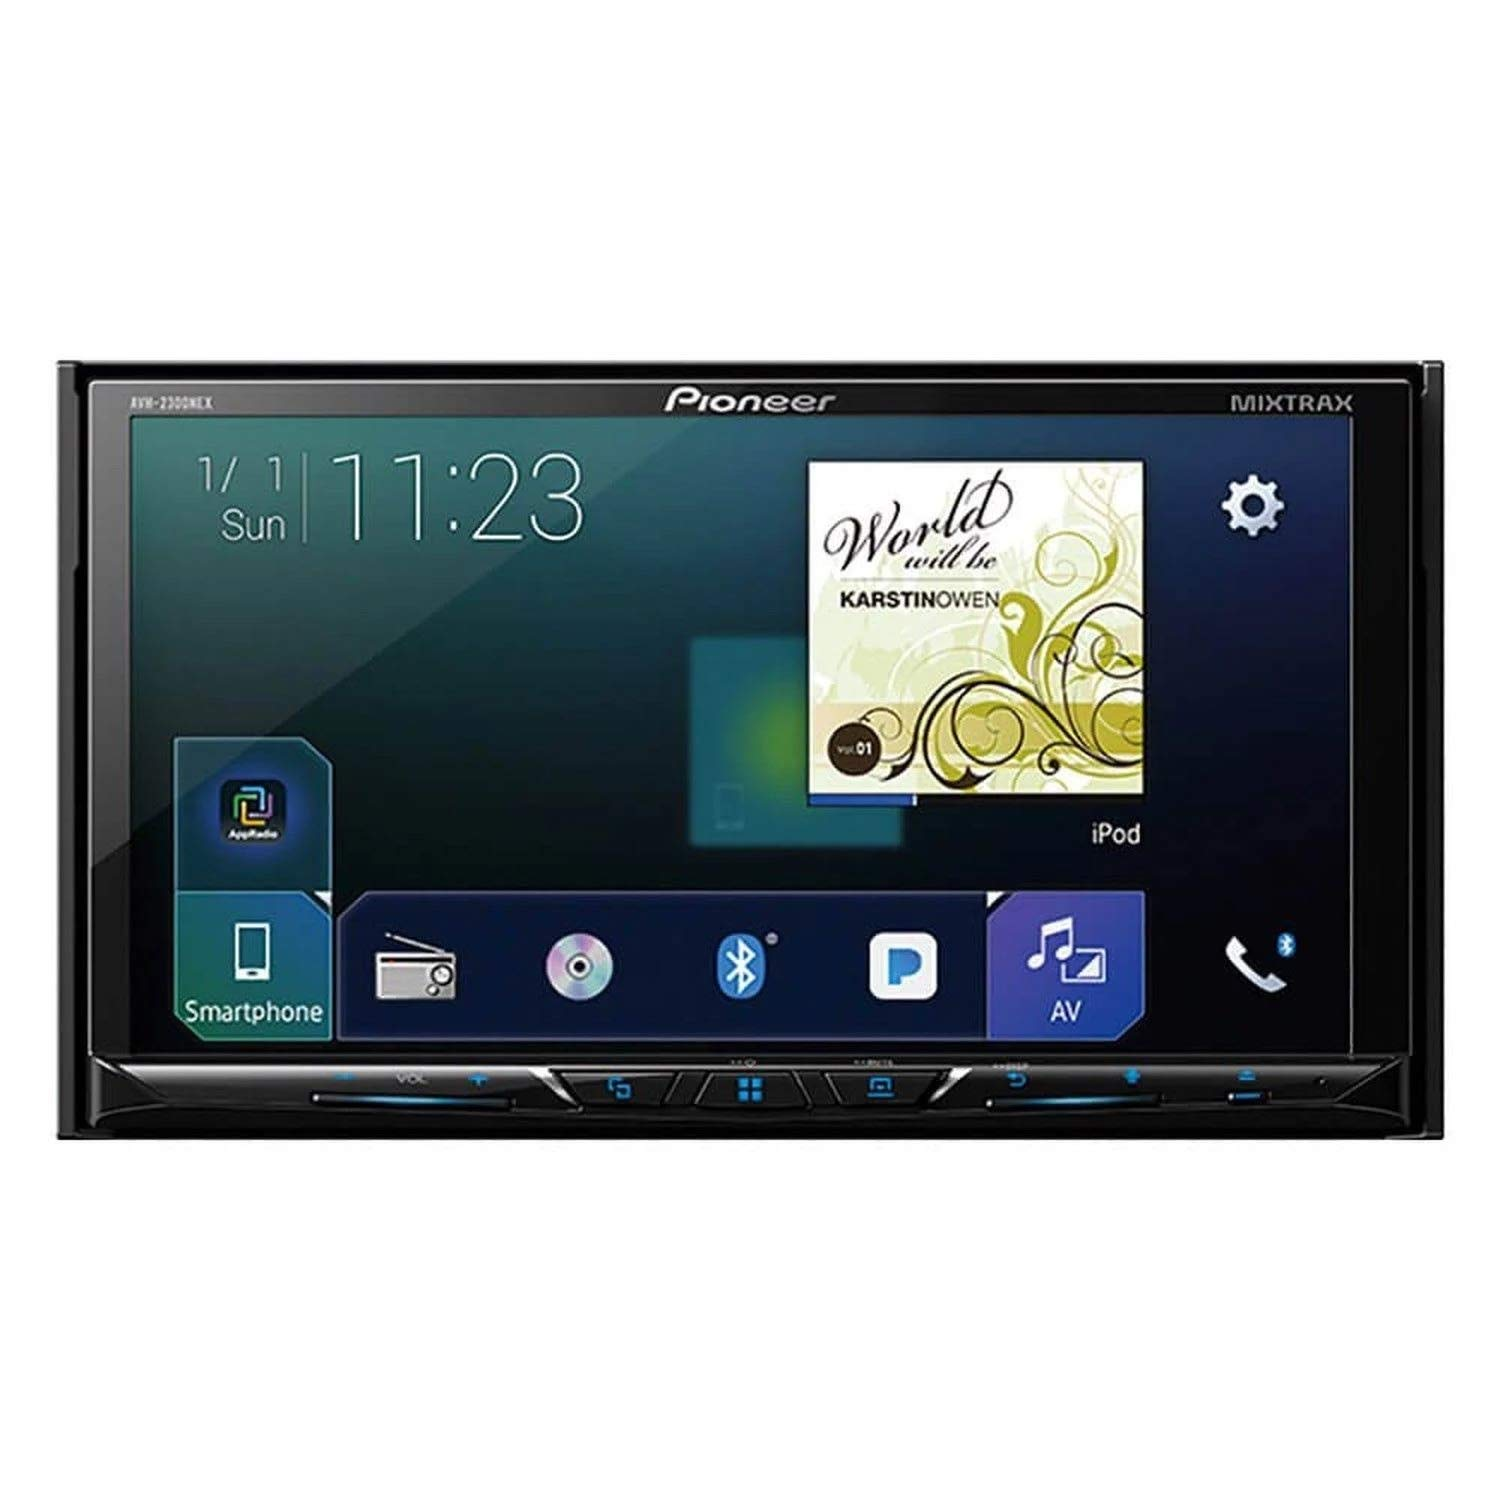 Pioneer AVH-2300NEX Multimedia DVD Receiver with 7'' WVGA Display/Apple CarPlay/Android Auto/Built-in Bluetooth/SiriusXM-Ready/AppRadio Mode + by PIONEER (Image #1)